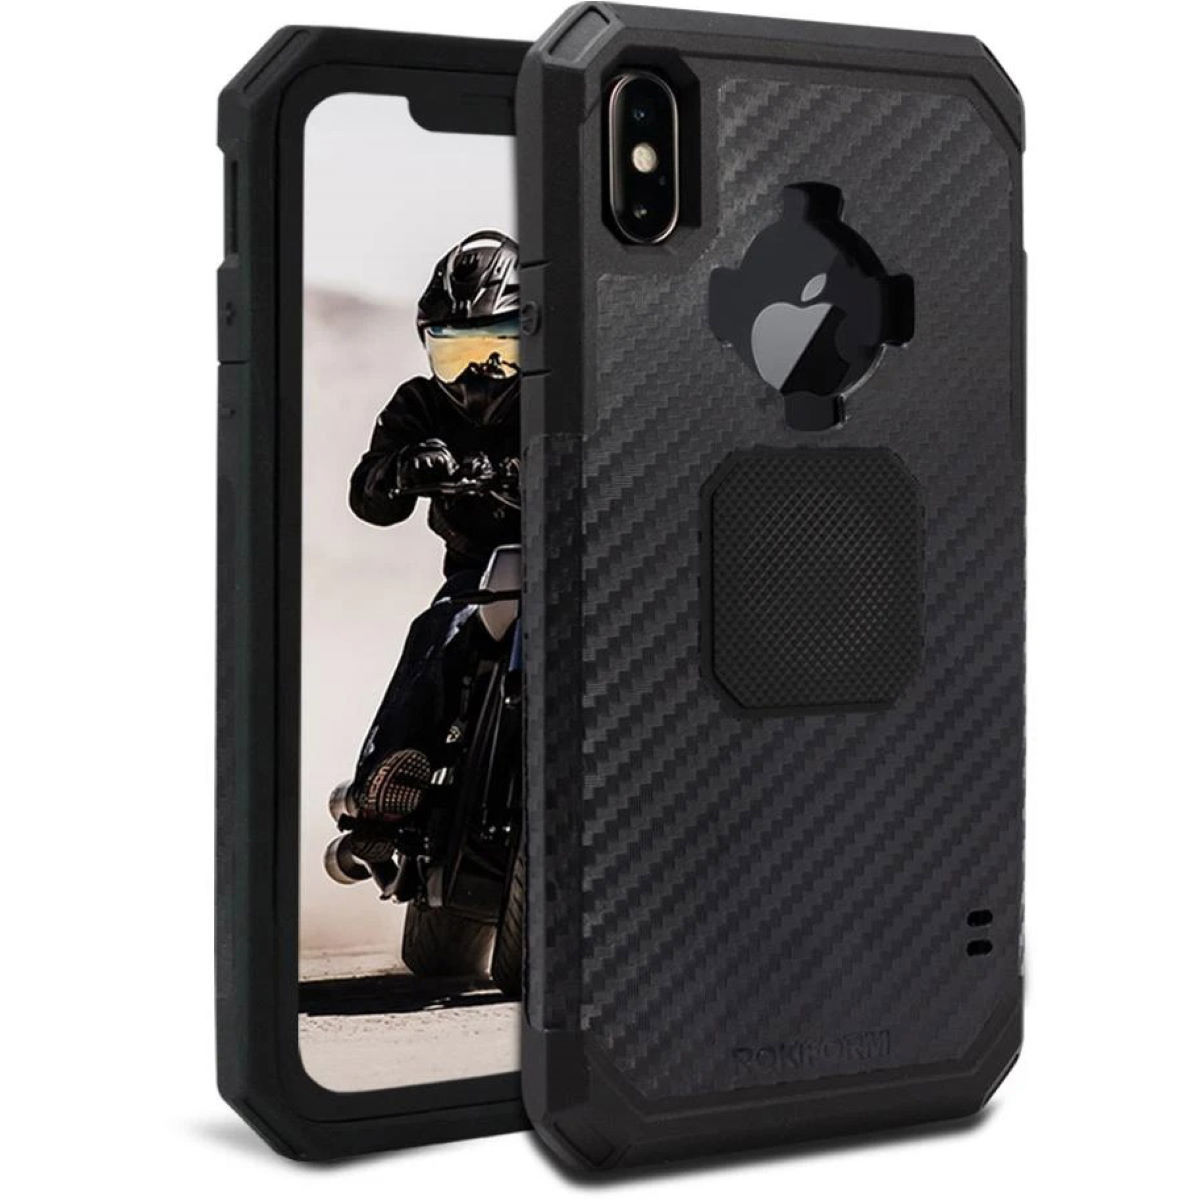 Rokform Rugged Phone Case - iPhone XS Max - One Size Black